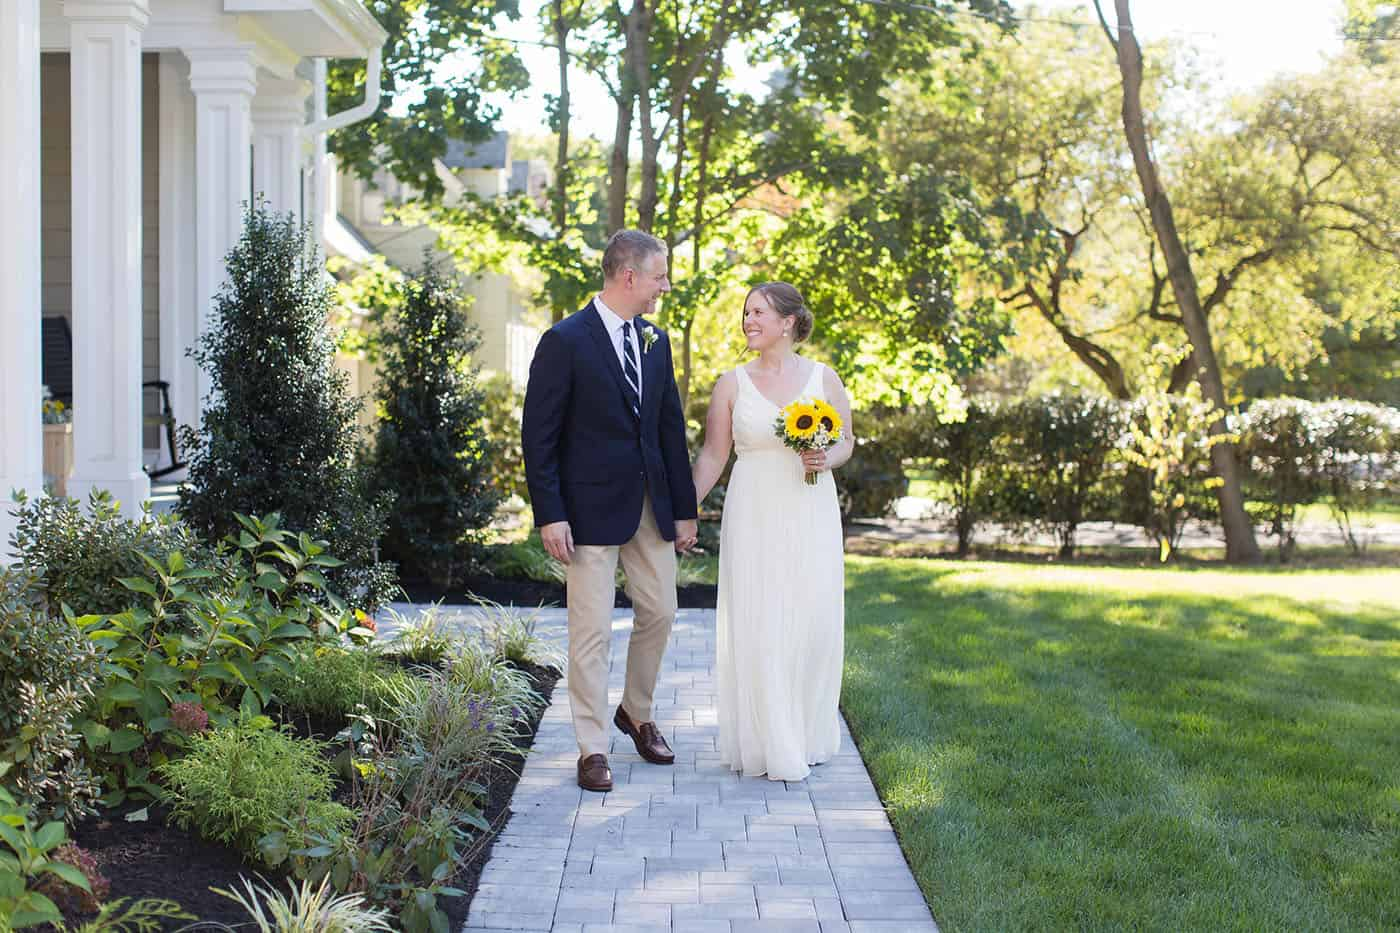 bride with sunflower bouquet walking down the aisle by customer service whiz cinnamon wolfe